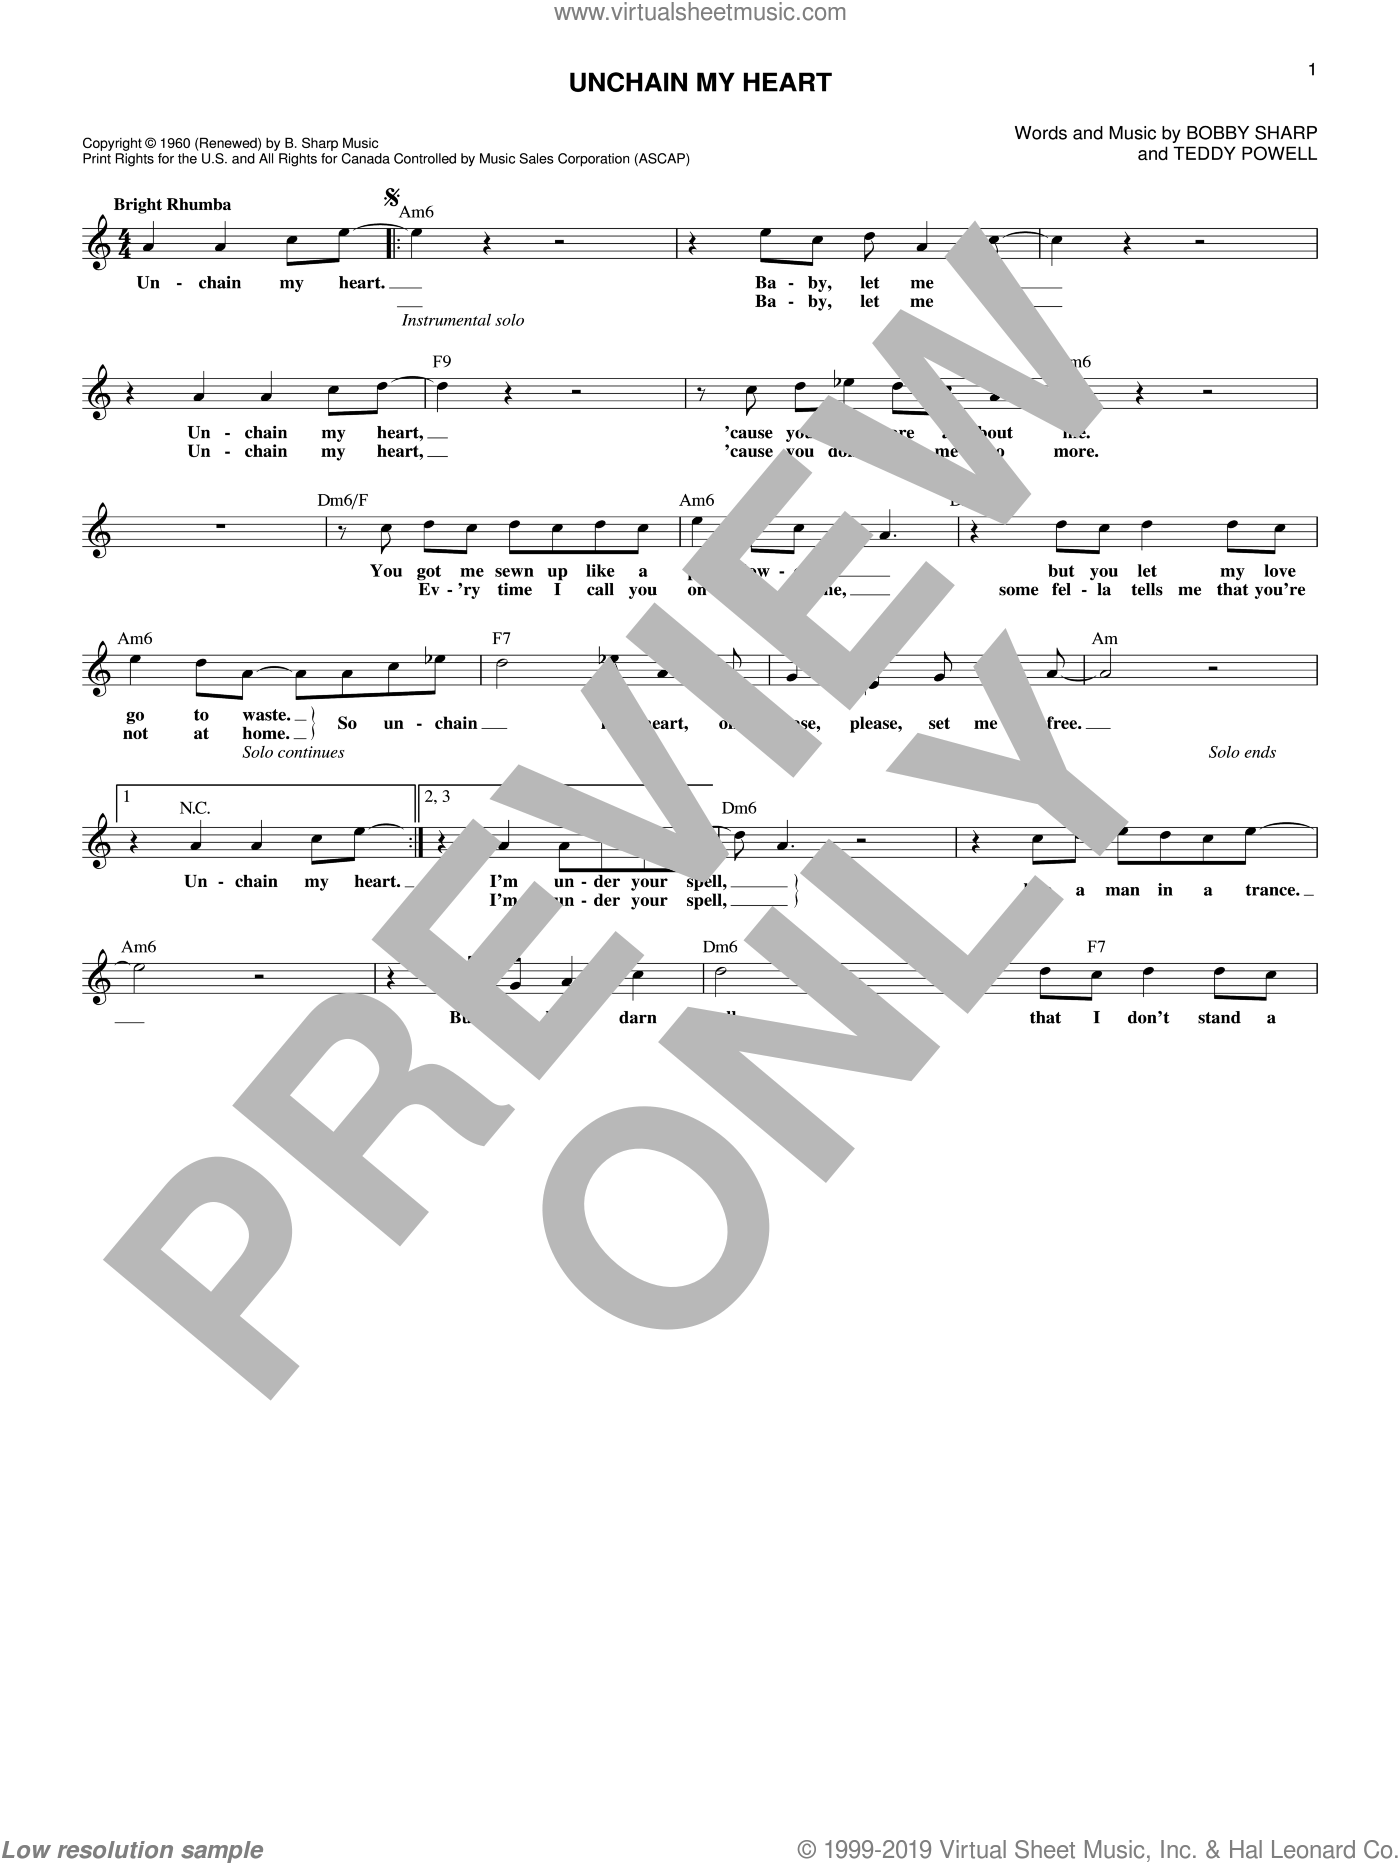 Unchain My Heart sheet music for voice and other instruments (fake book) by Ray Charles, Bobby Sharp and Teddy Powell, intermediate skill level